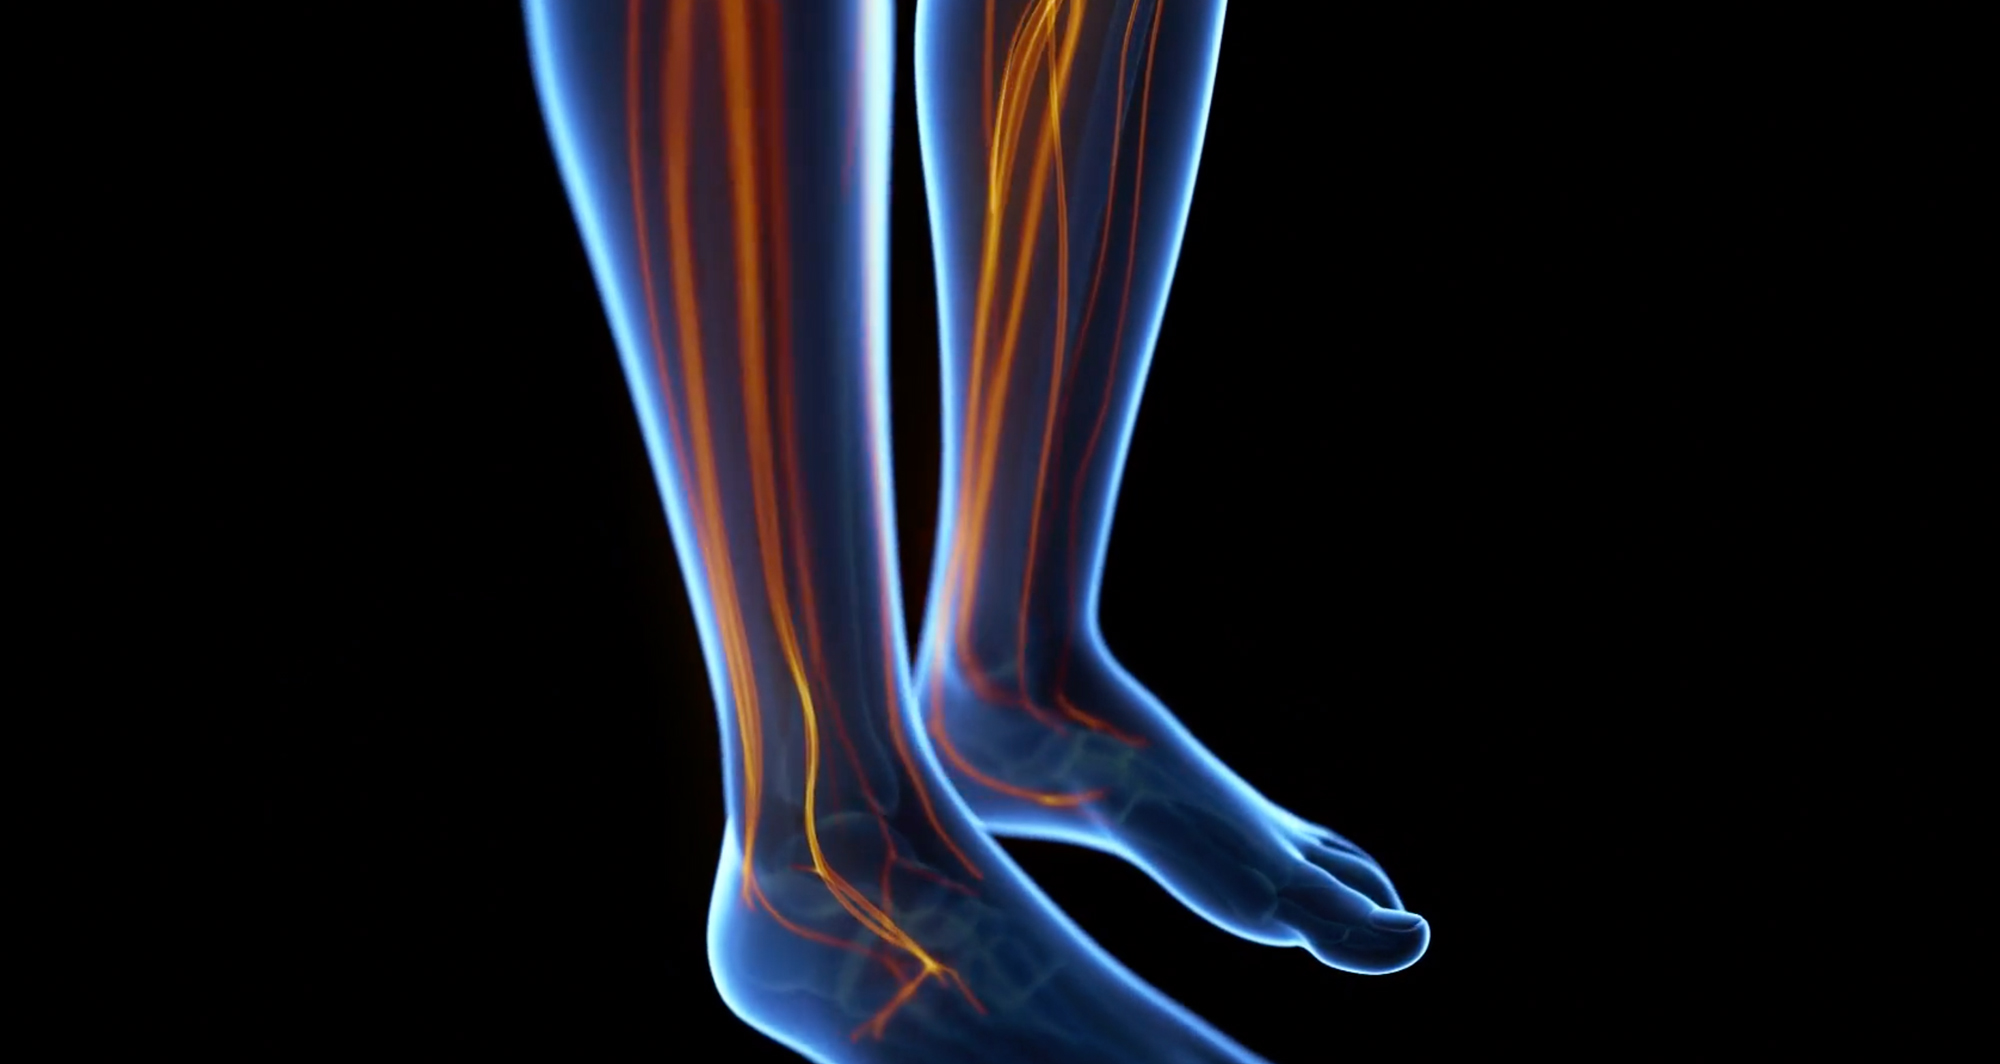 3D rendering of legs with veins